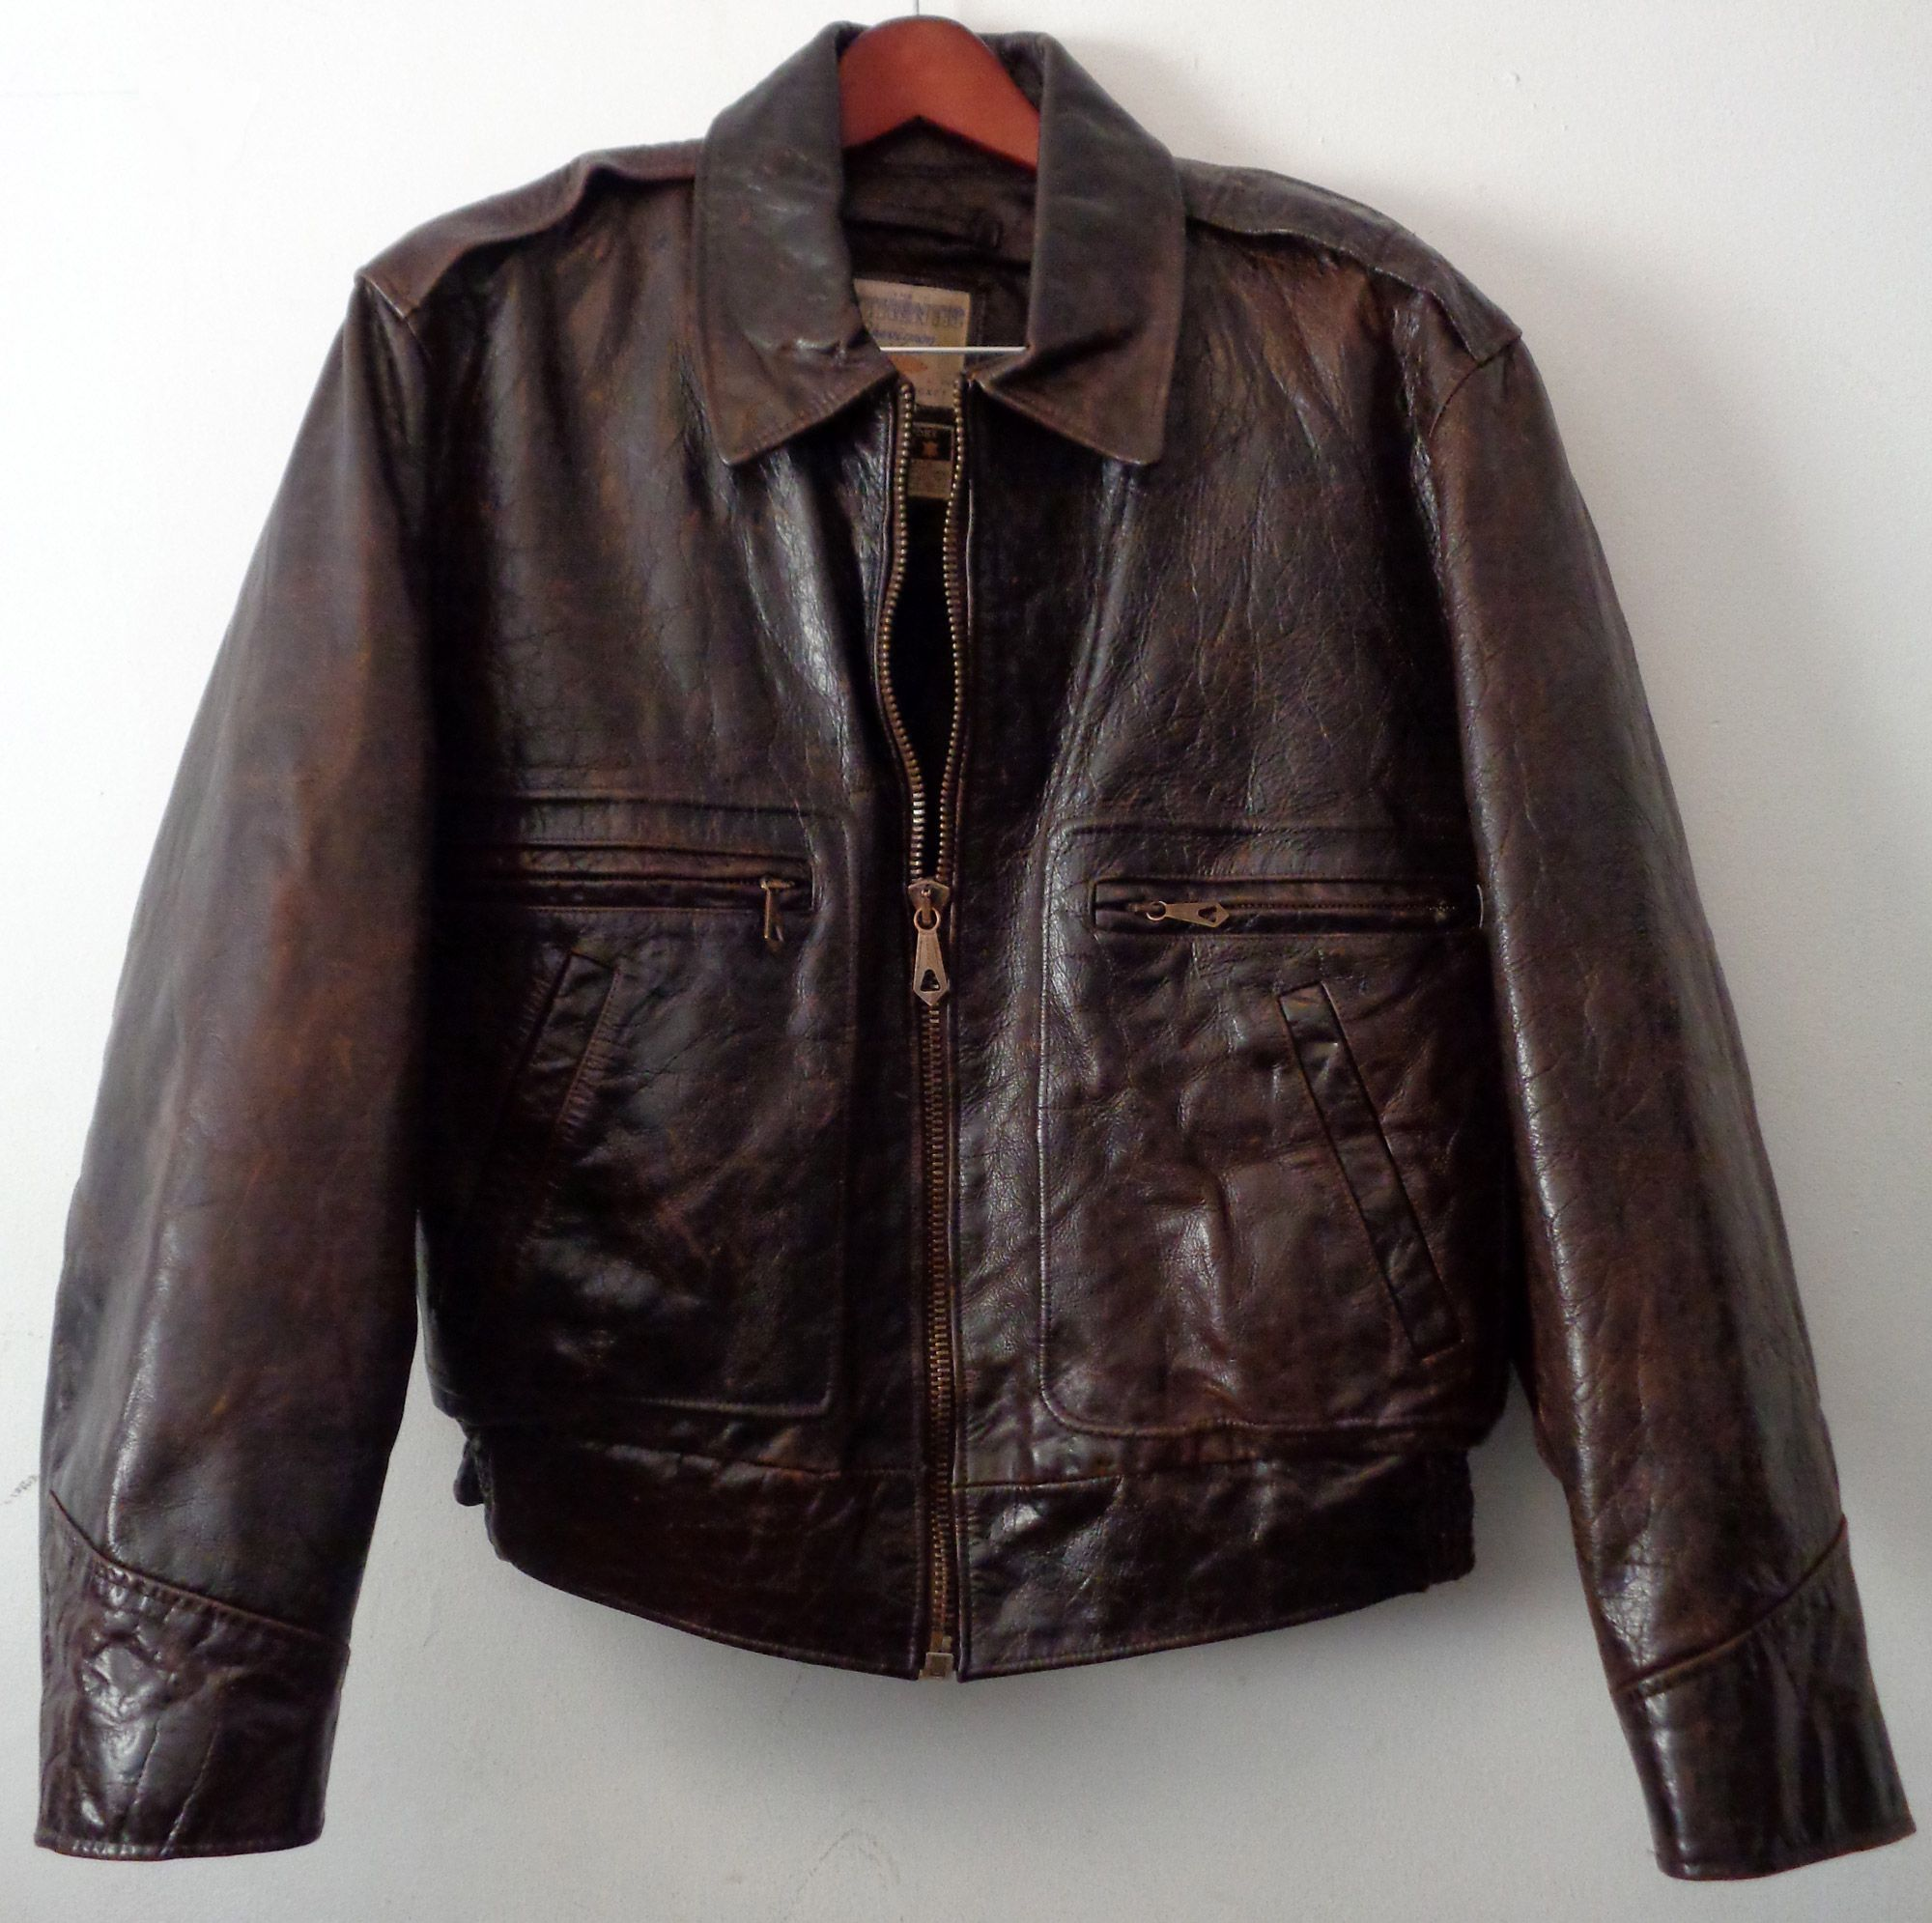 c381f382fac CHEVIGNON Brown Leather Bomber Jacket Men s Size L  Leather  Bomber  Jacket   BomberJacket